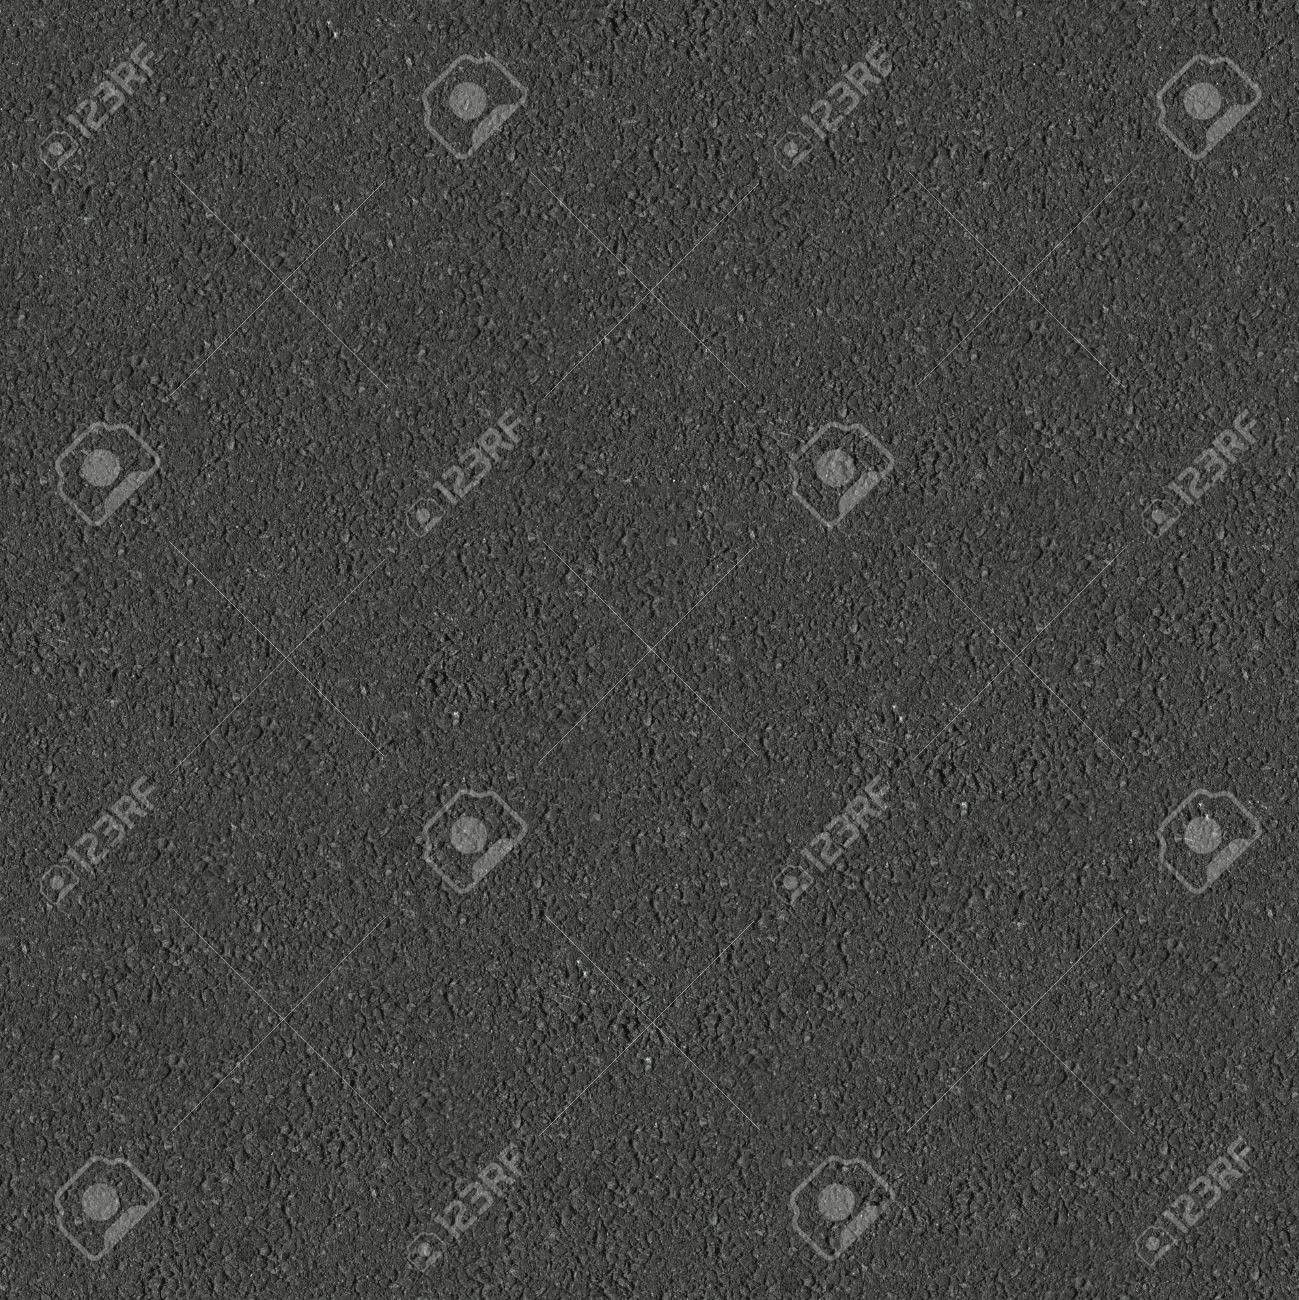 Asphalt Seamless Texture 0016 It has Disp, Specular and Normal